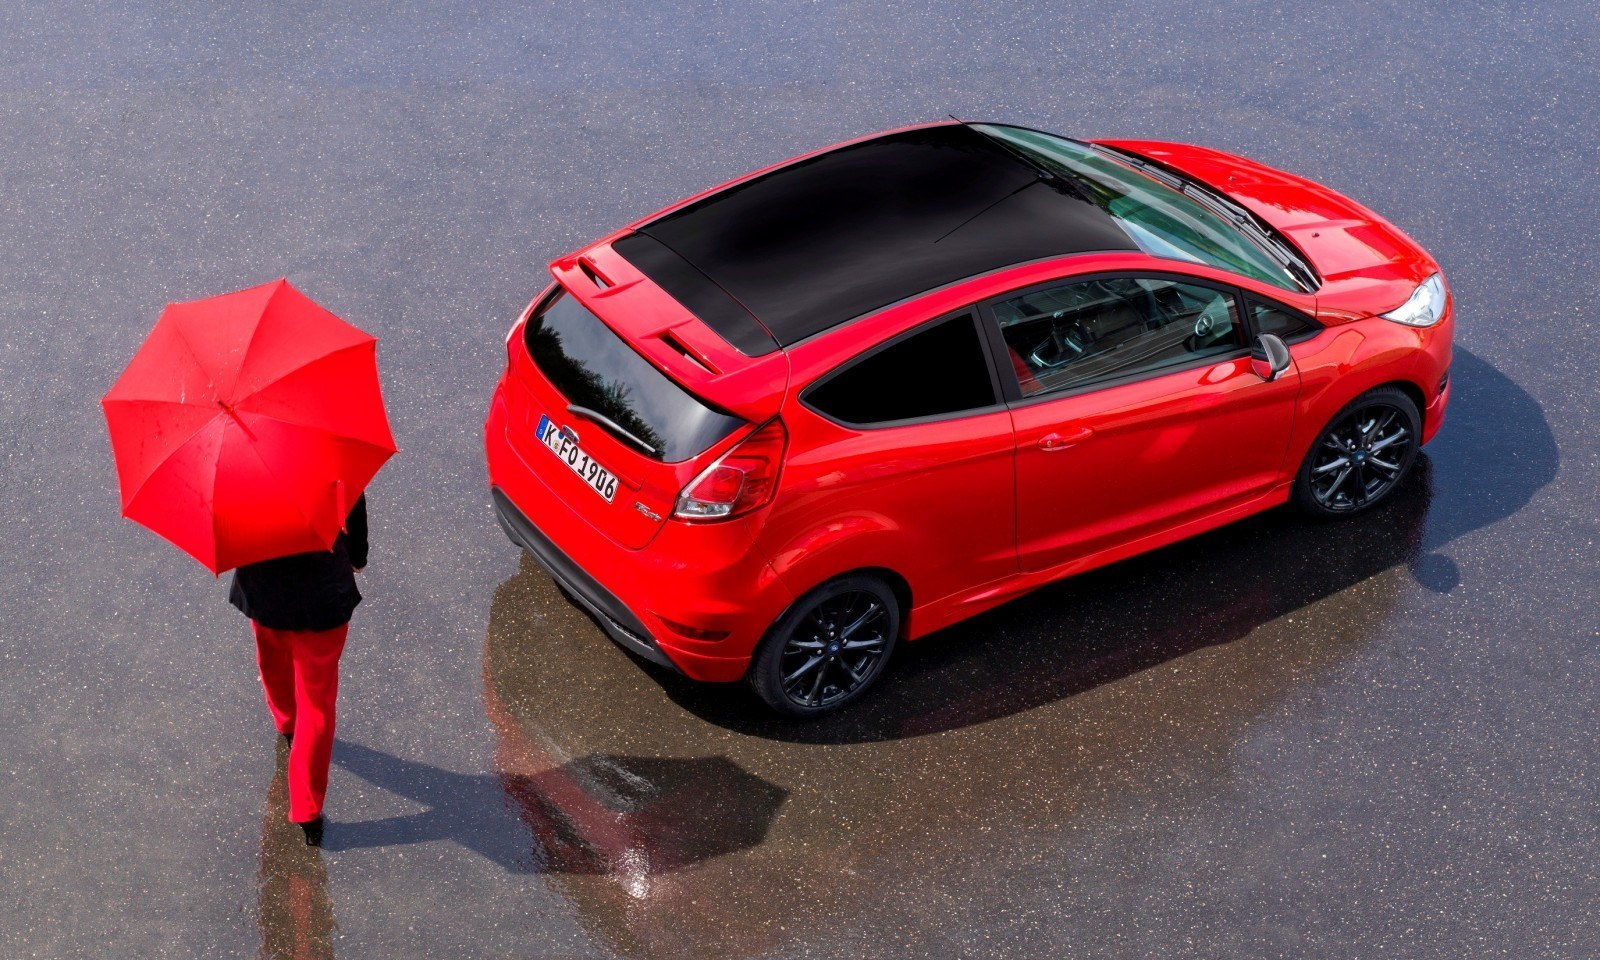 2014 ford fiesta red edition and fiesta black edition announced for uk 9 car revs. Black Bedroom Furniture Sets. Home Design Ideas